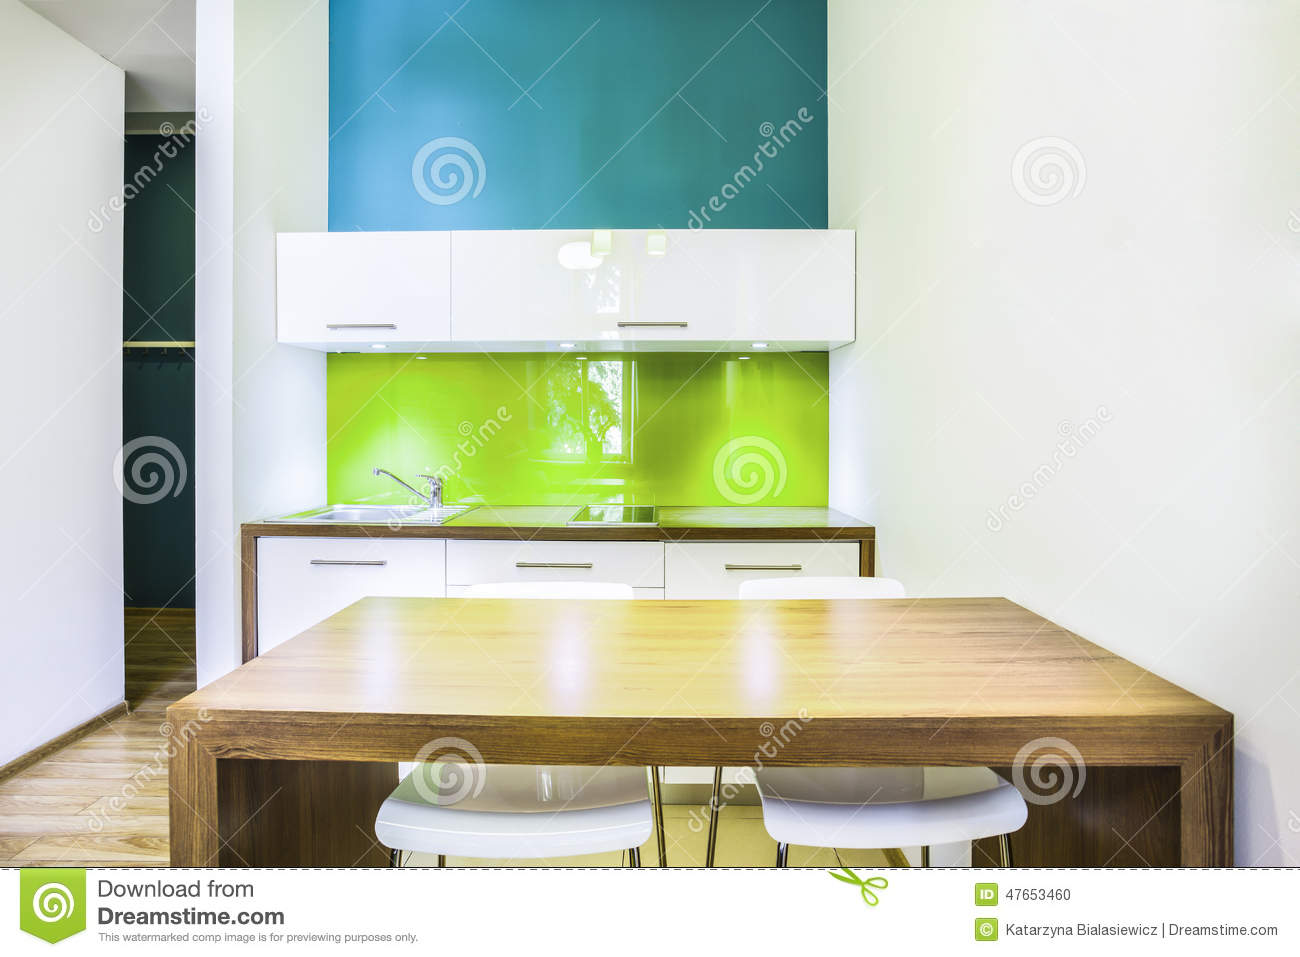 Kitchenette verte dans la chambre d 39 h tel photo stock image 47653460 for La chambre verte truffaut youtube